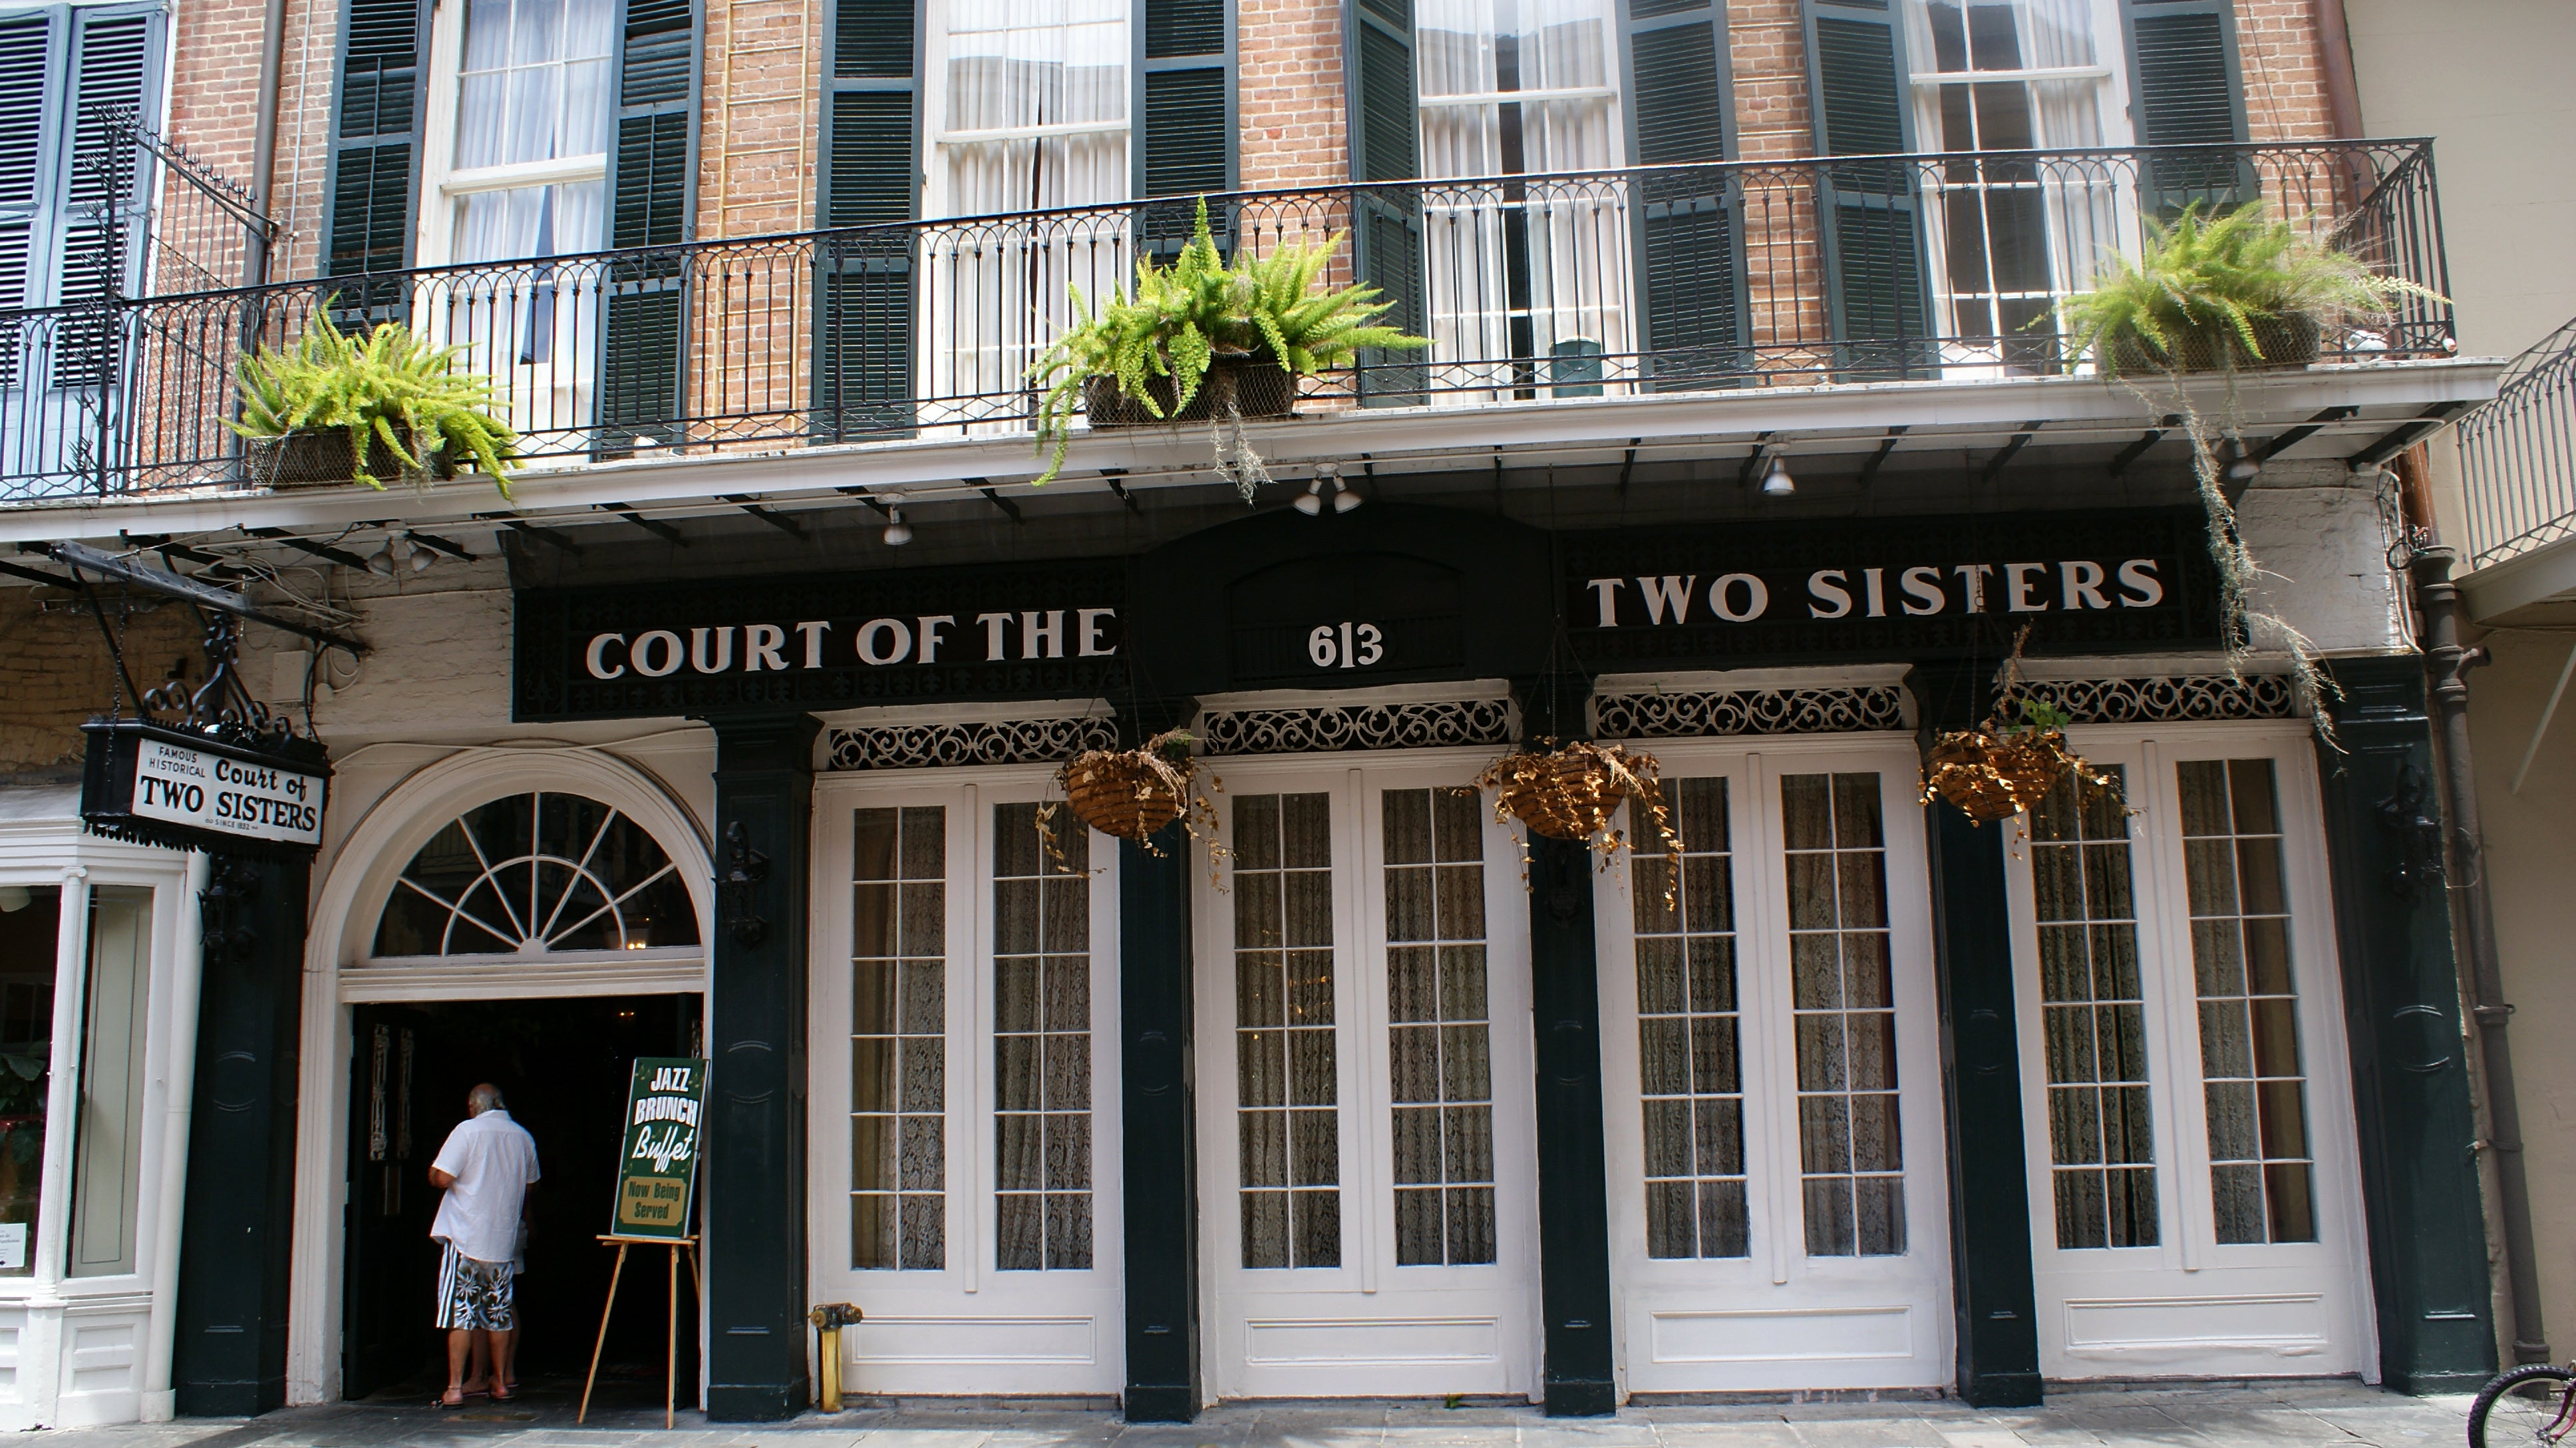 Court of the Two Sisters